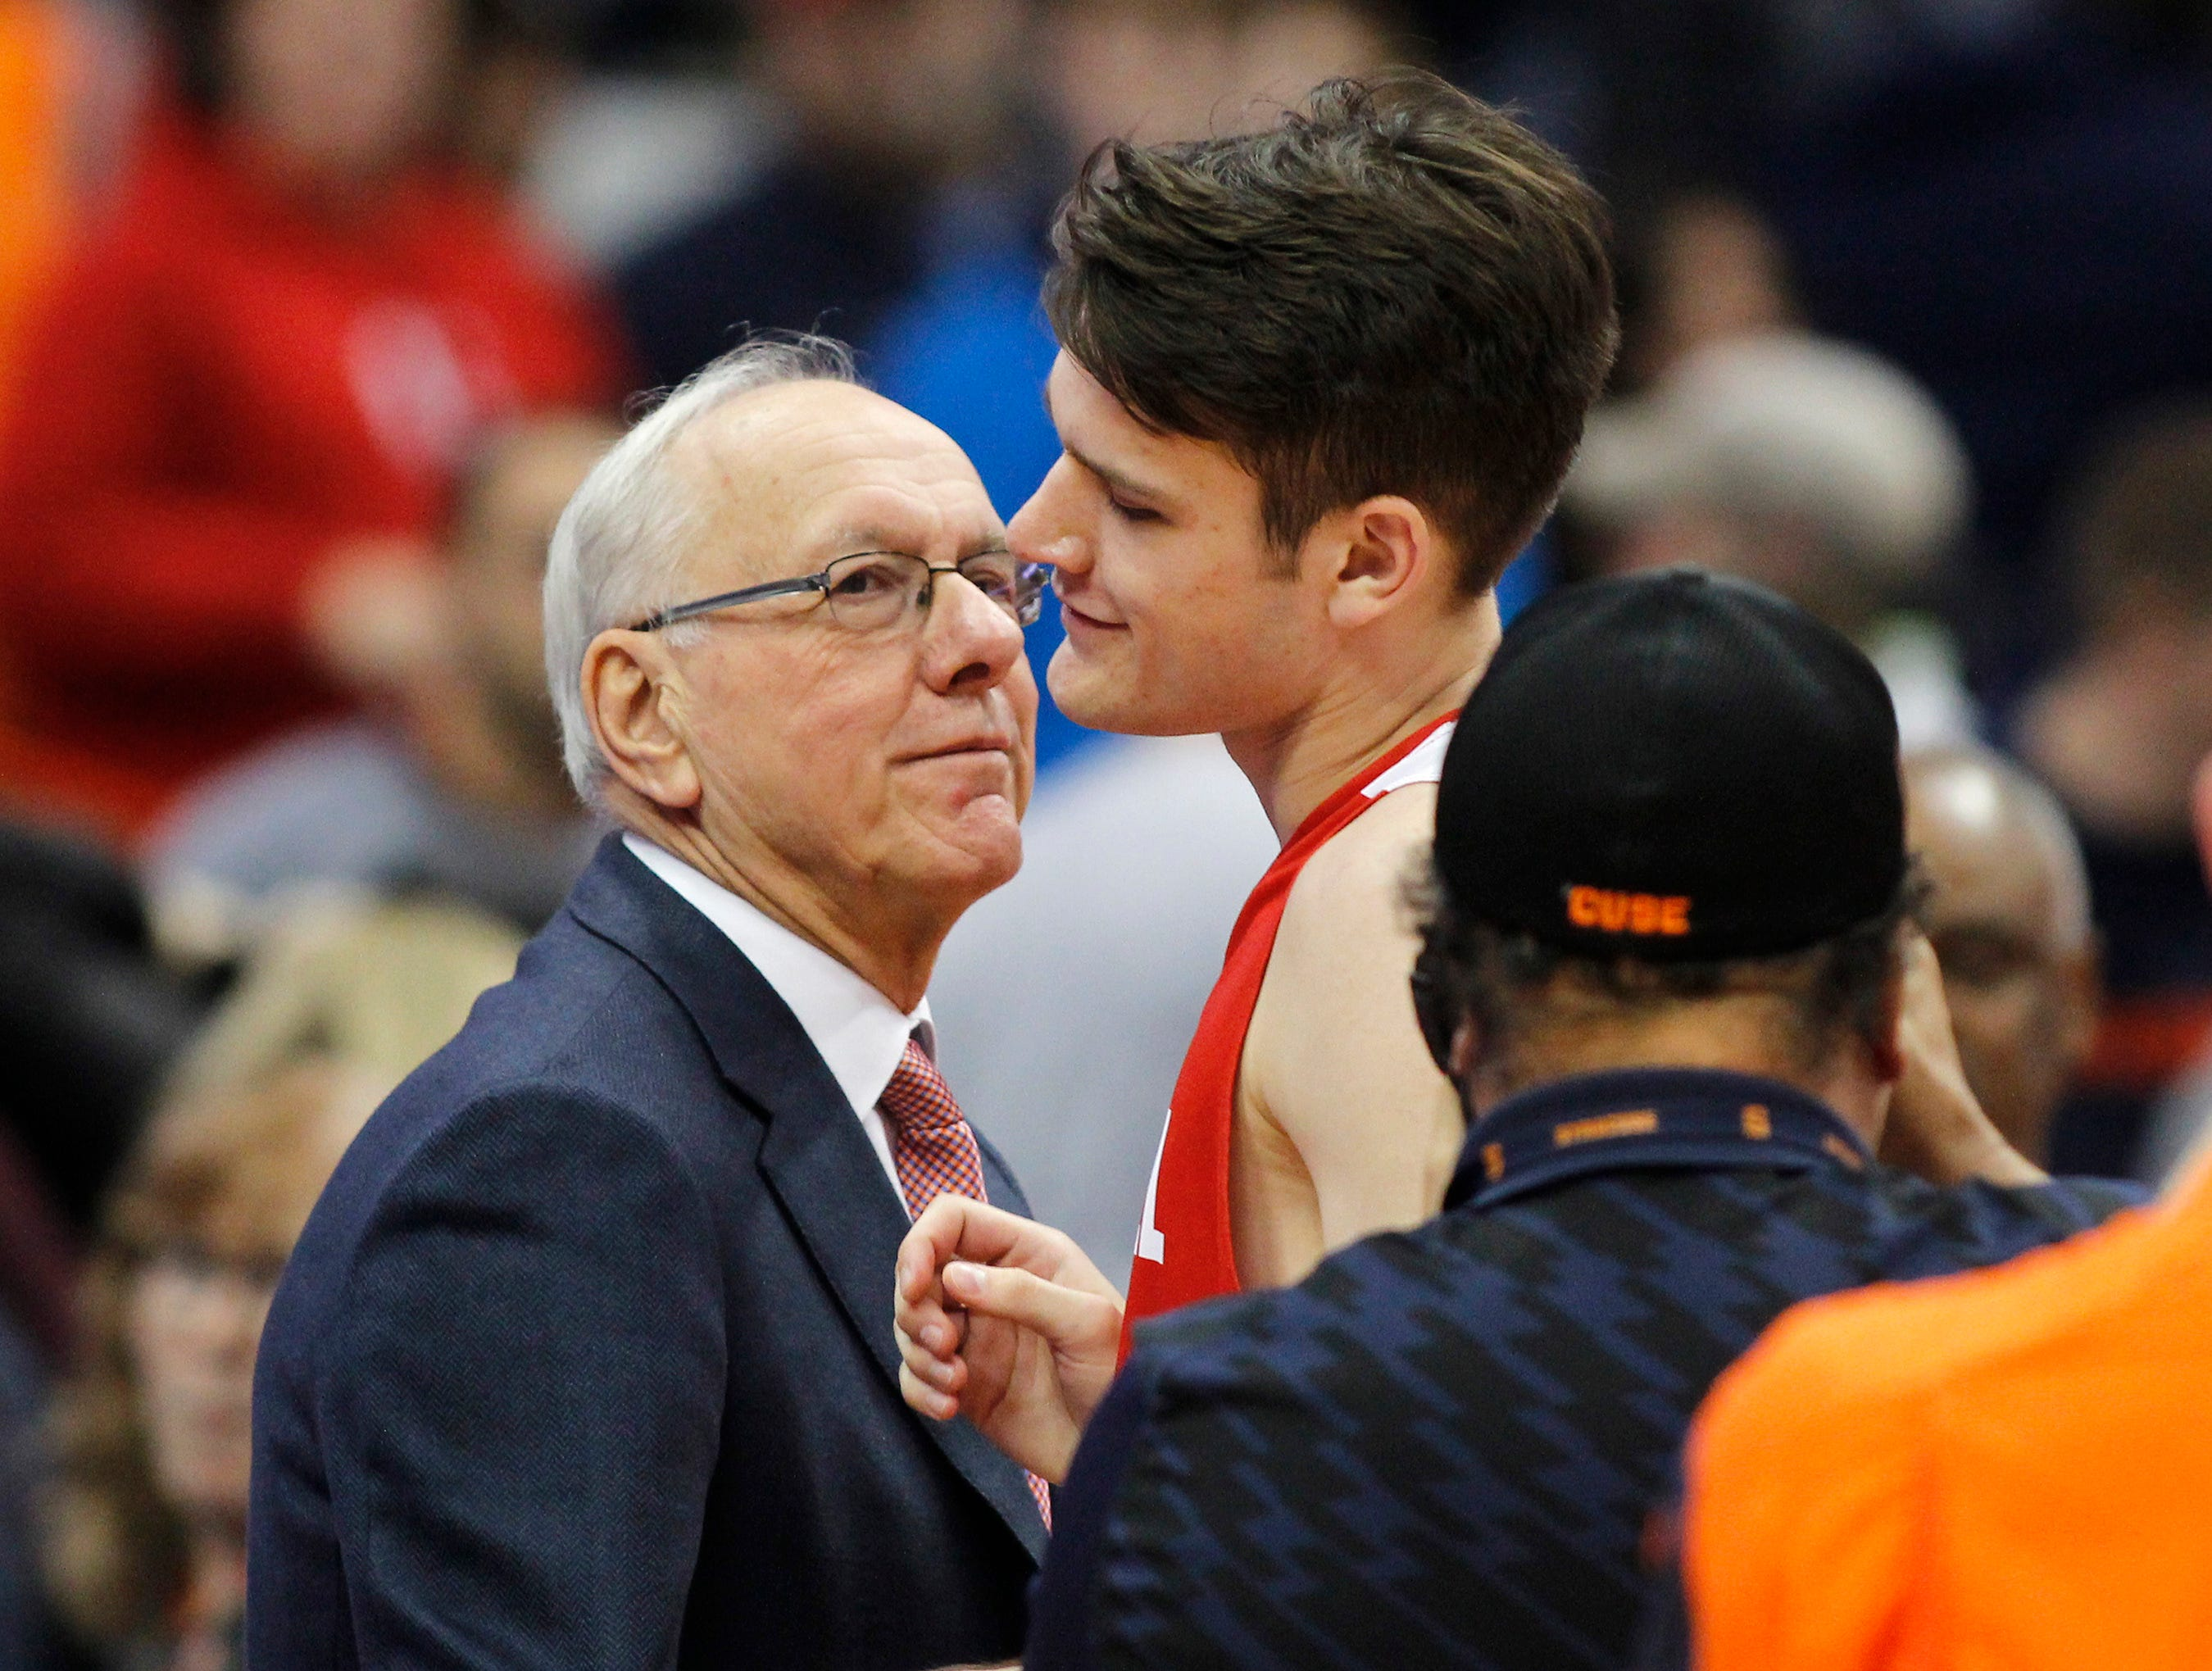 Syracuse head coach Jim Boeheim, left, congratulates his son, Cornell's Jimmy Boeheim, right, at the end of an NCAA college basketball game in Syracuse, N.Y., Friday, Nov. 10, 2017. (AP Photo/Nick Lisi)